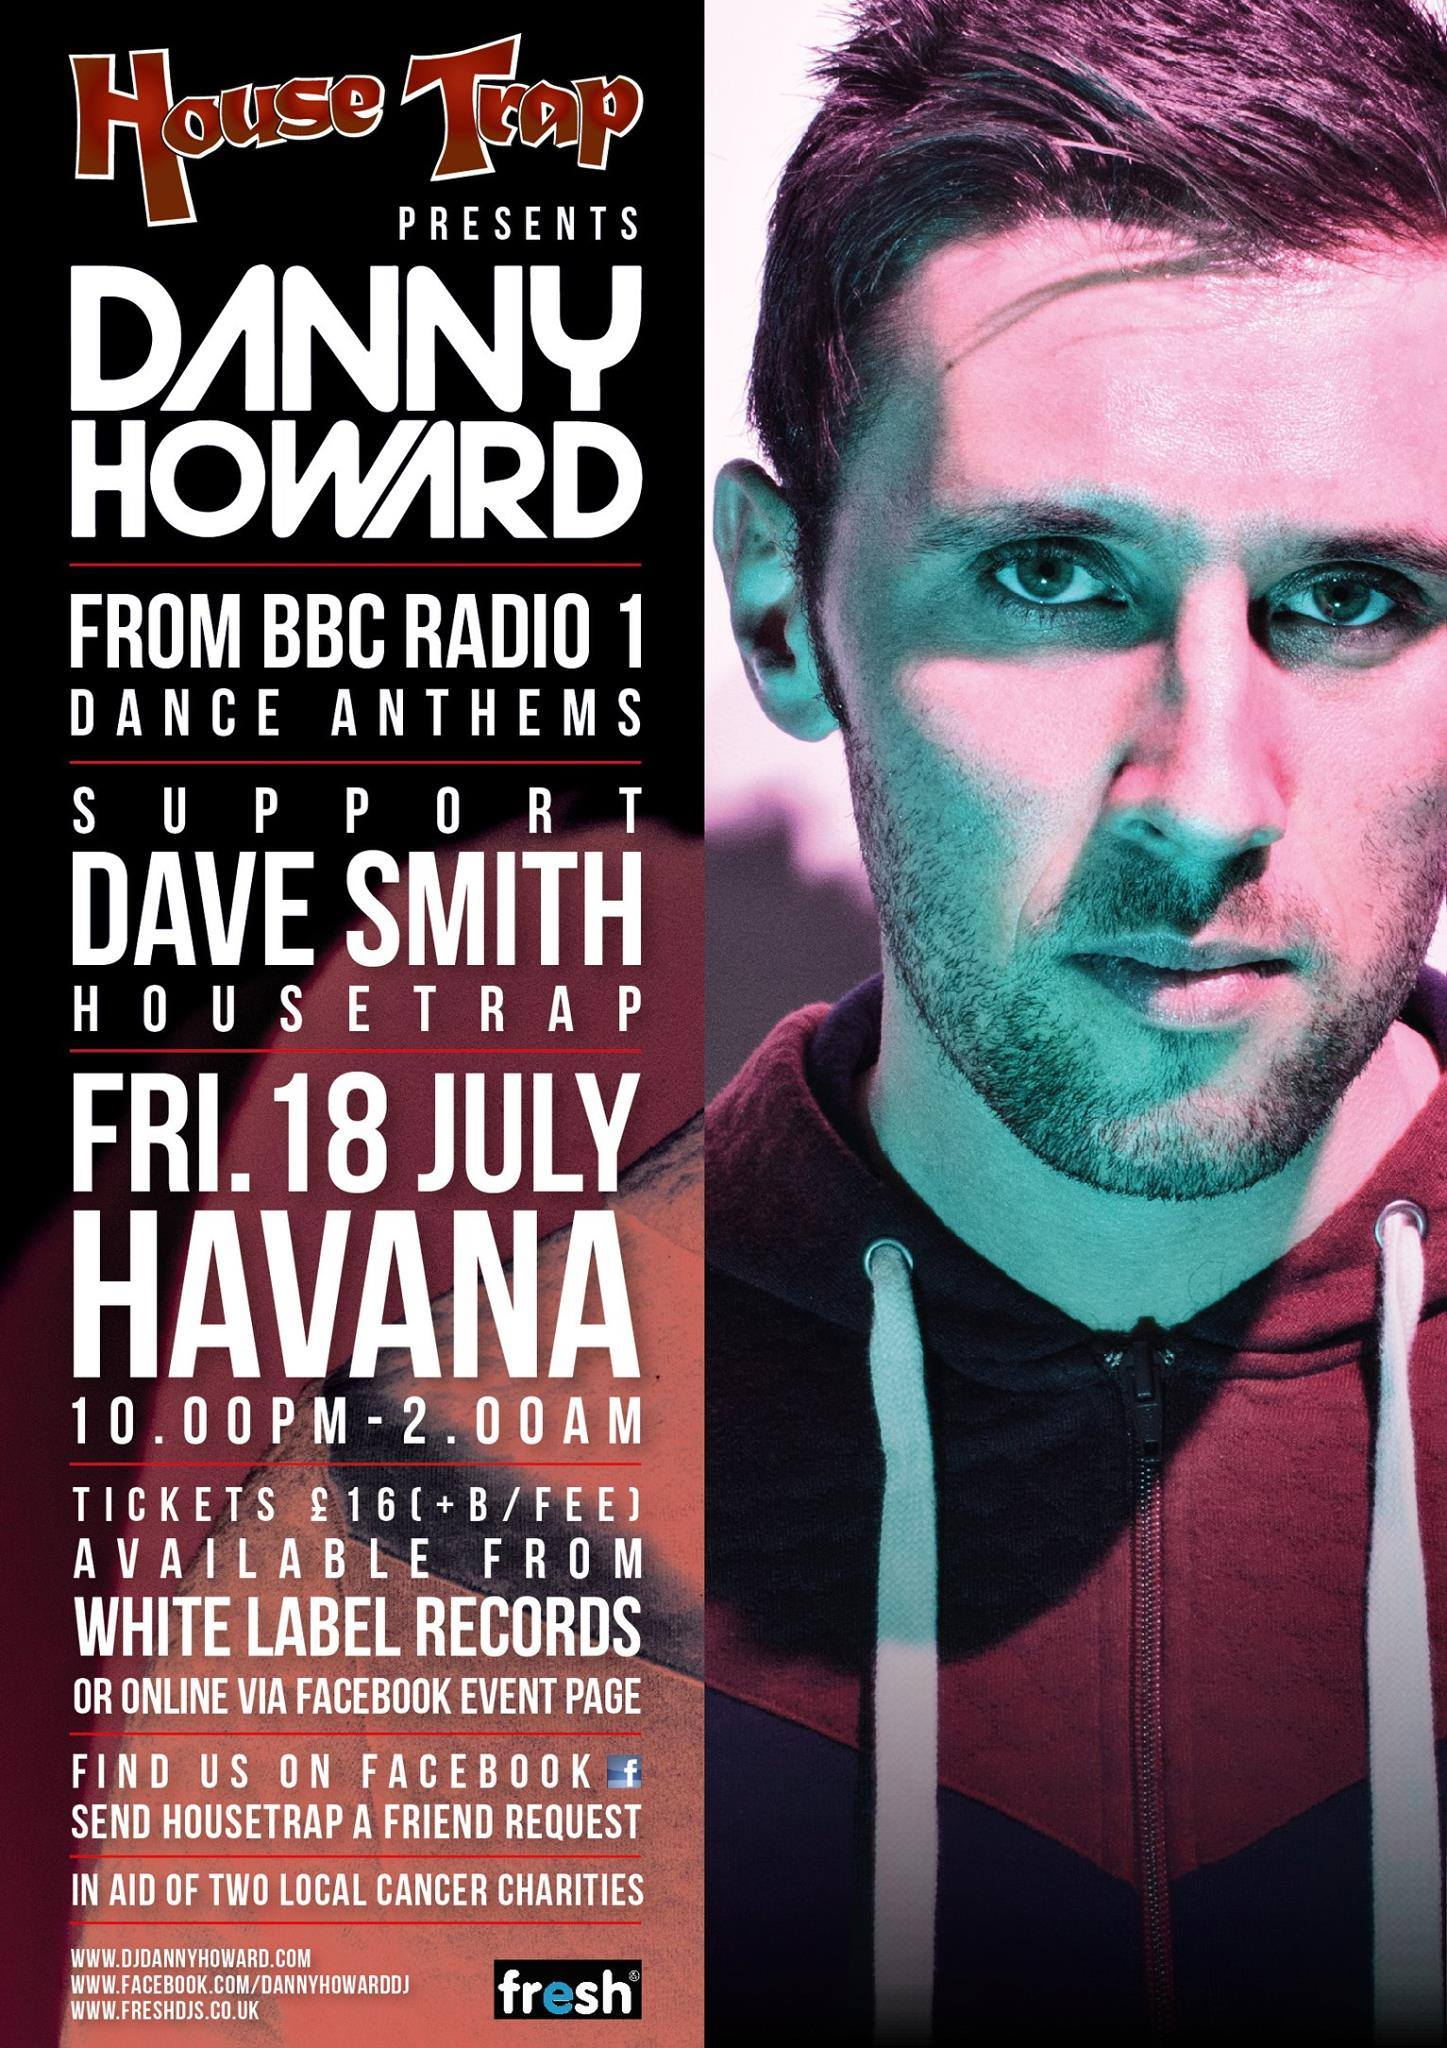 House Trap Presents Danny Howard (BBC Radio 1 Dance Anthems)